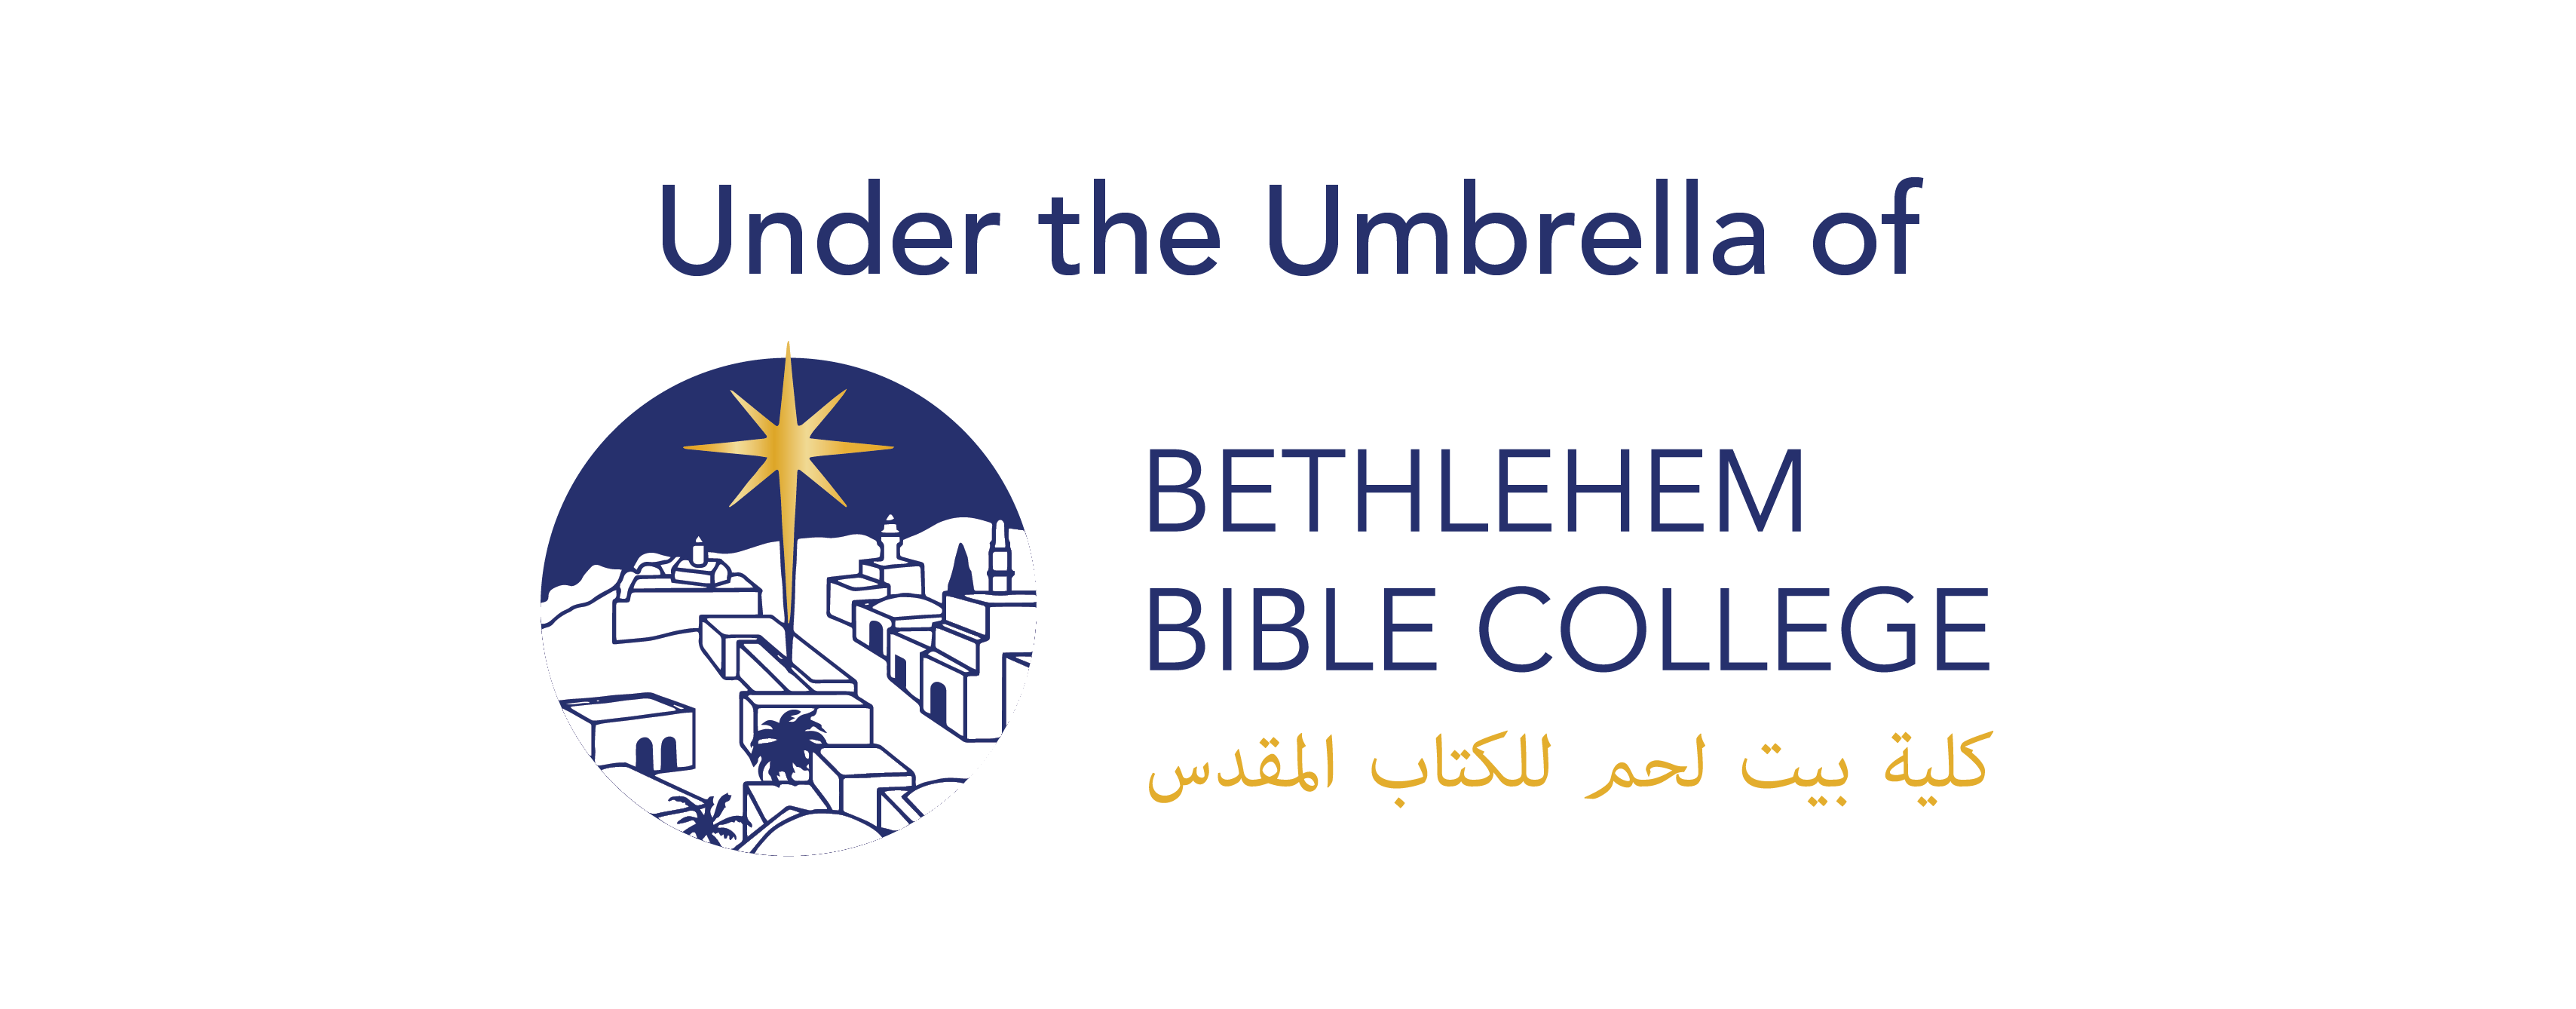 Under the Umbrella of Bethlehem Bible College